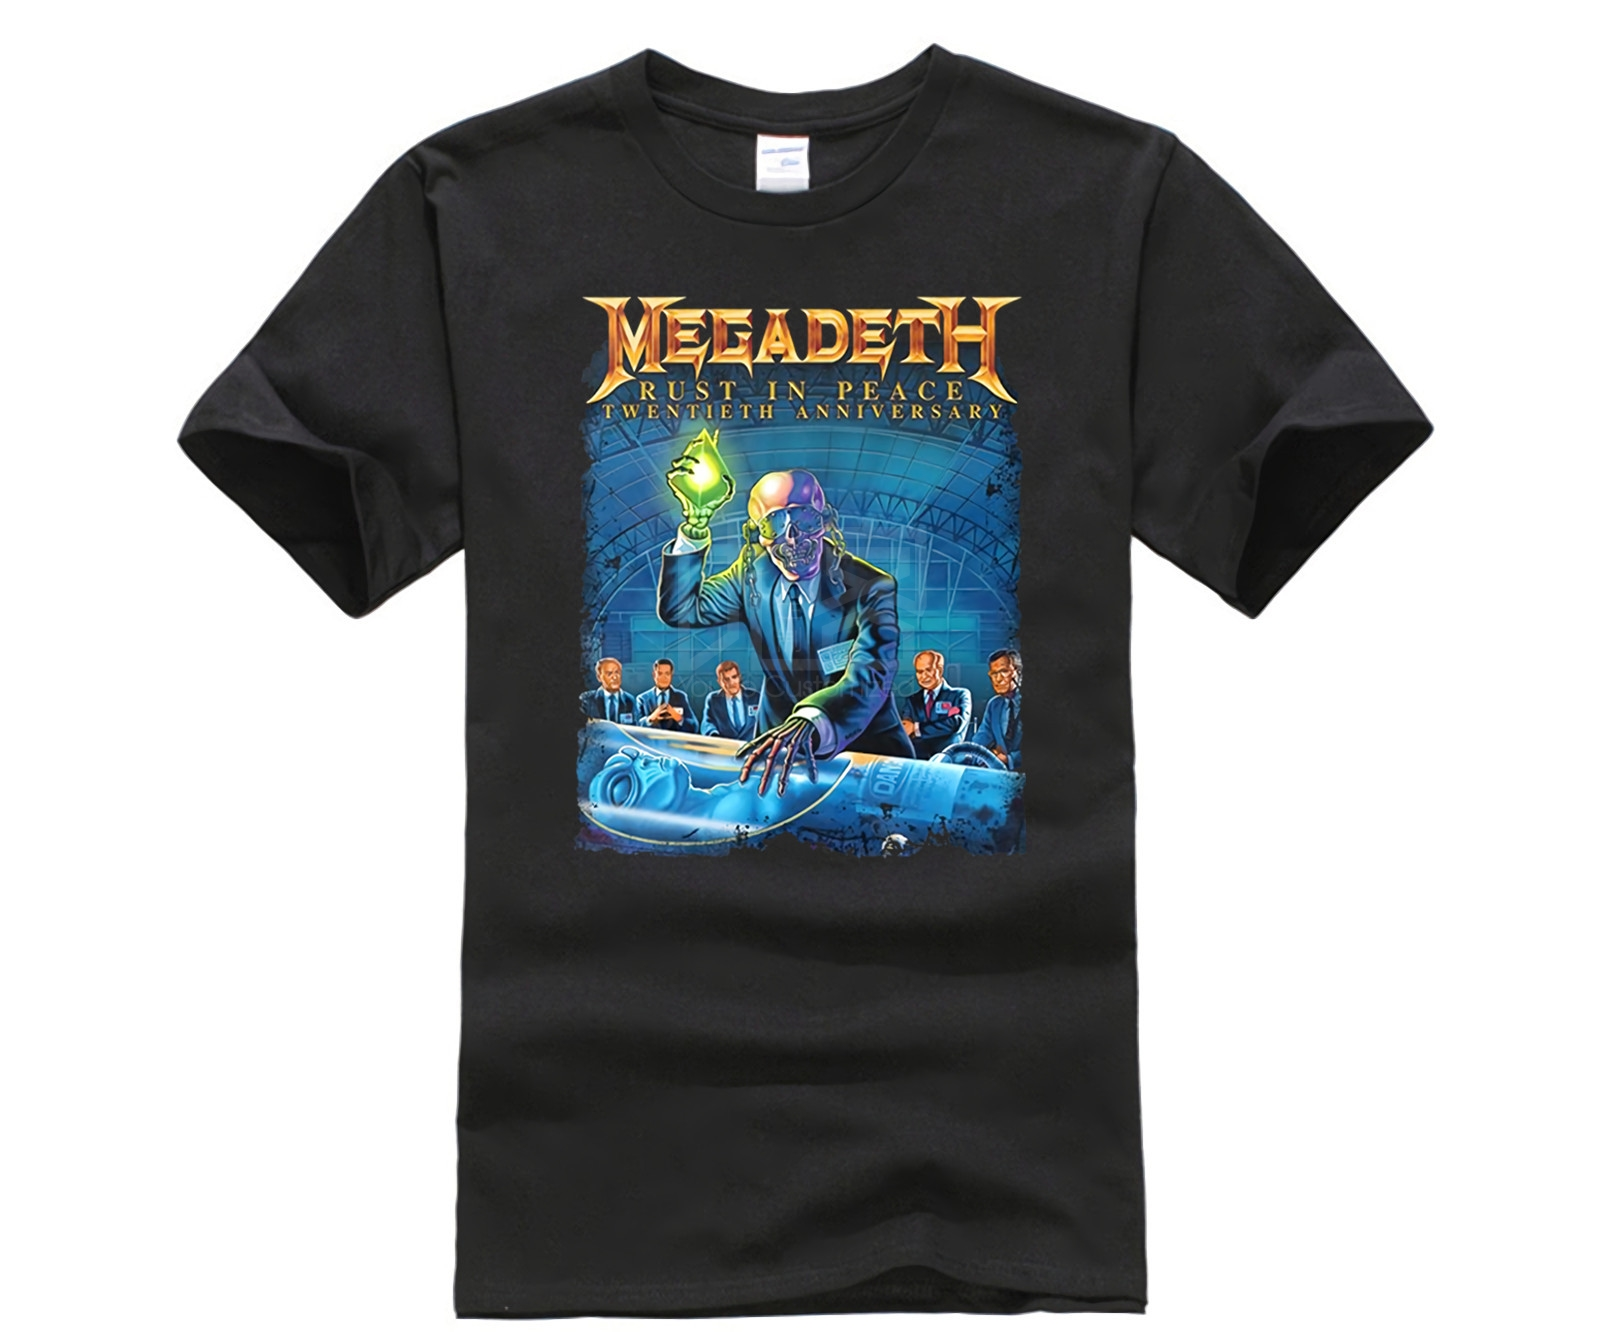 Tshirt Men   Megadeth Rust In Peace 20th Anniv Tour Black SMALL New Official NOS Sleeve Tee Shirt Homme T-shirt Top